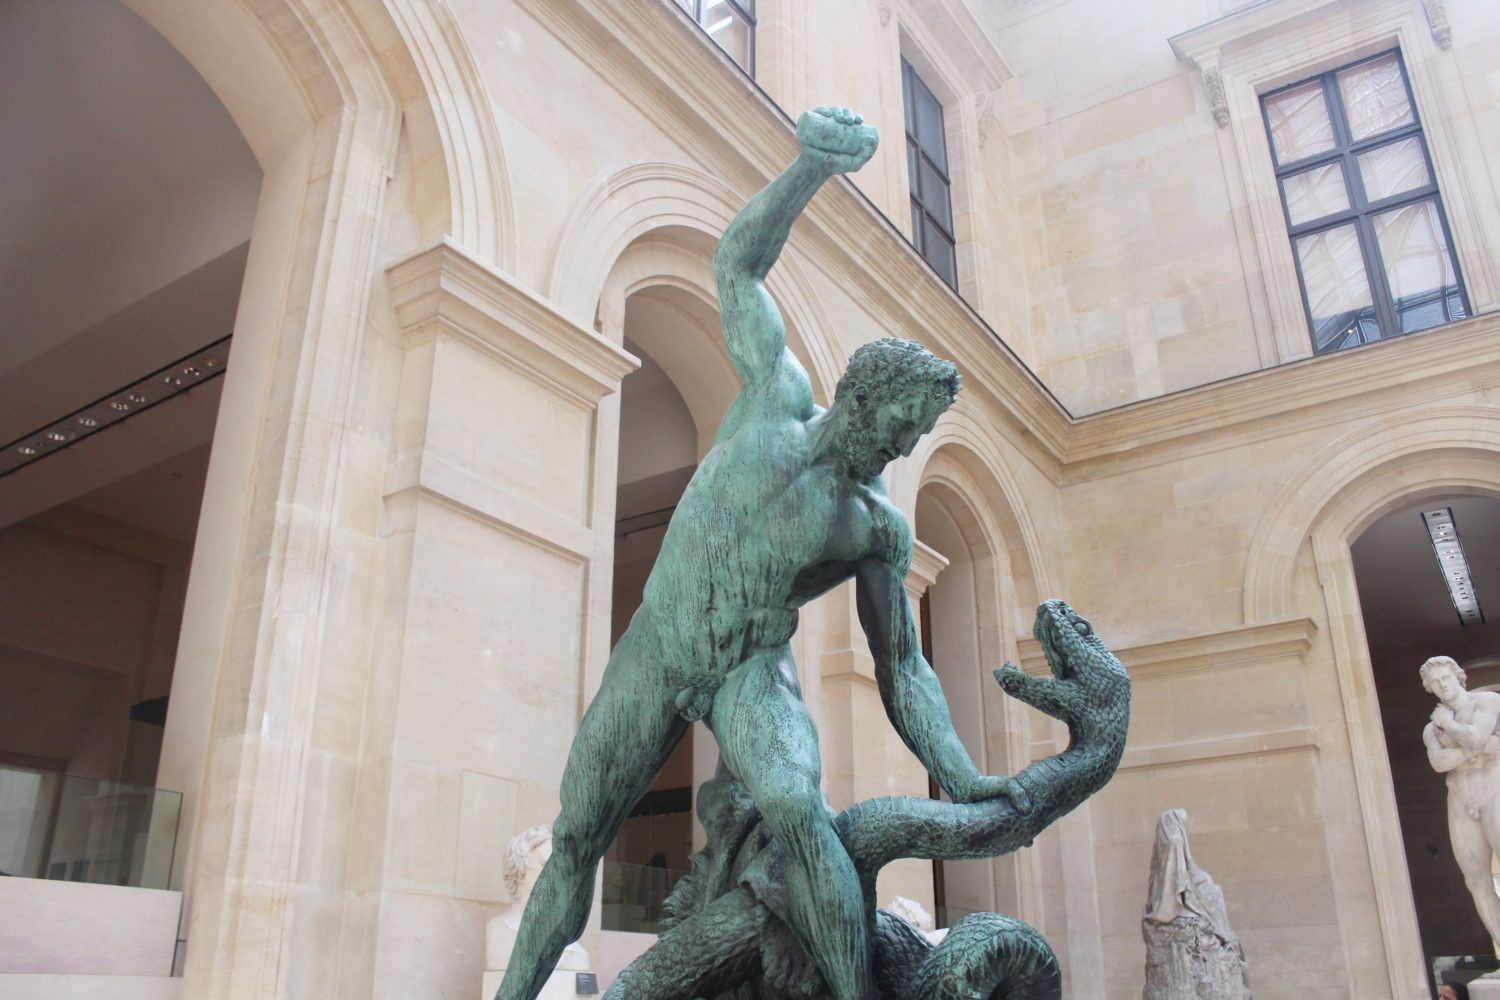 Hercules fighting a snake at the Louvre Museum